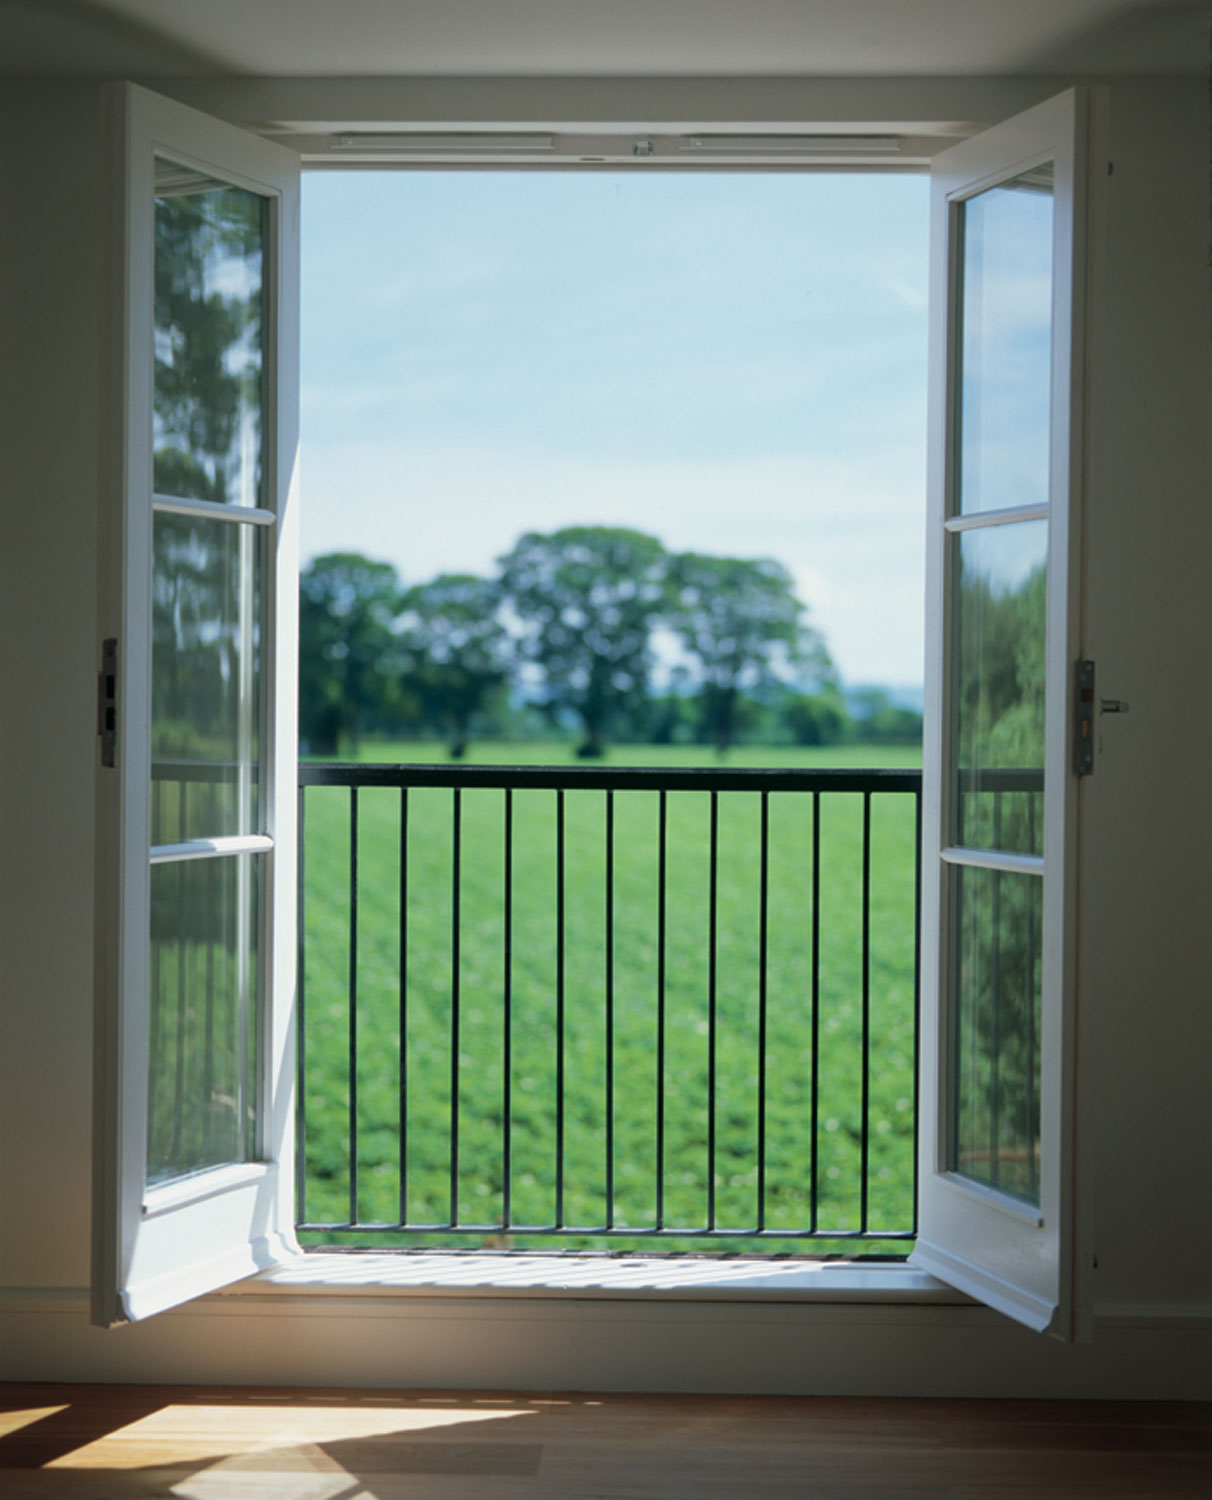 green fields through open timber casement window sunshine